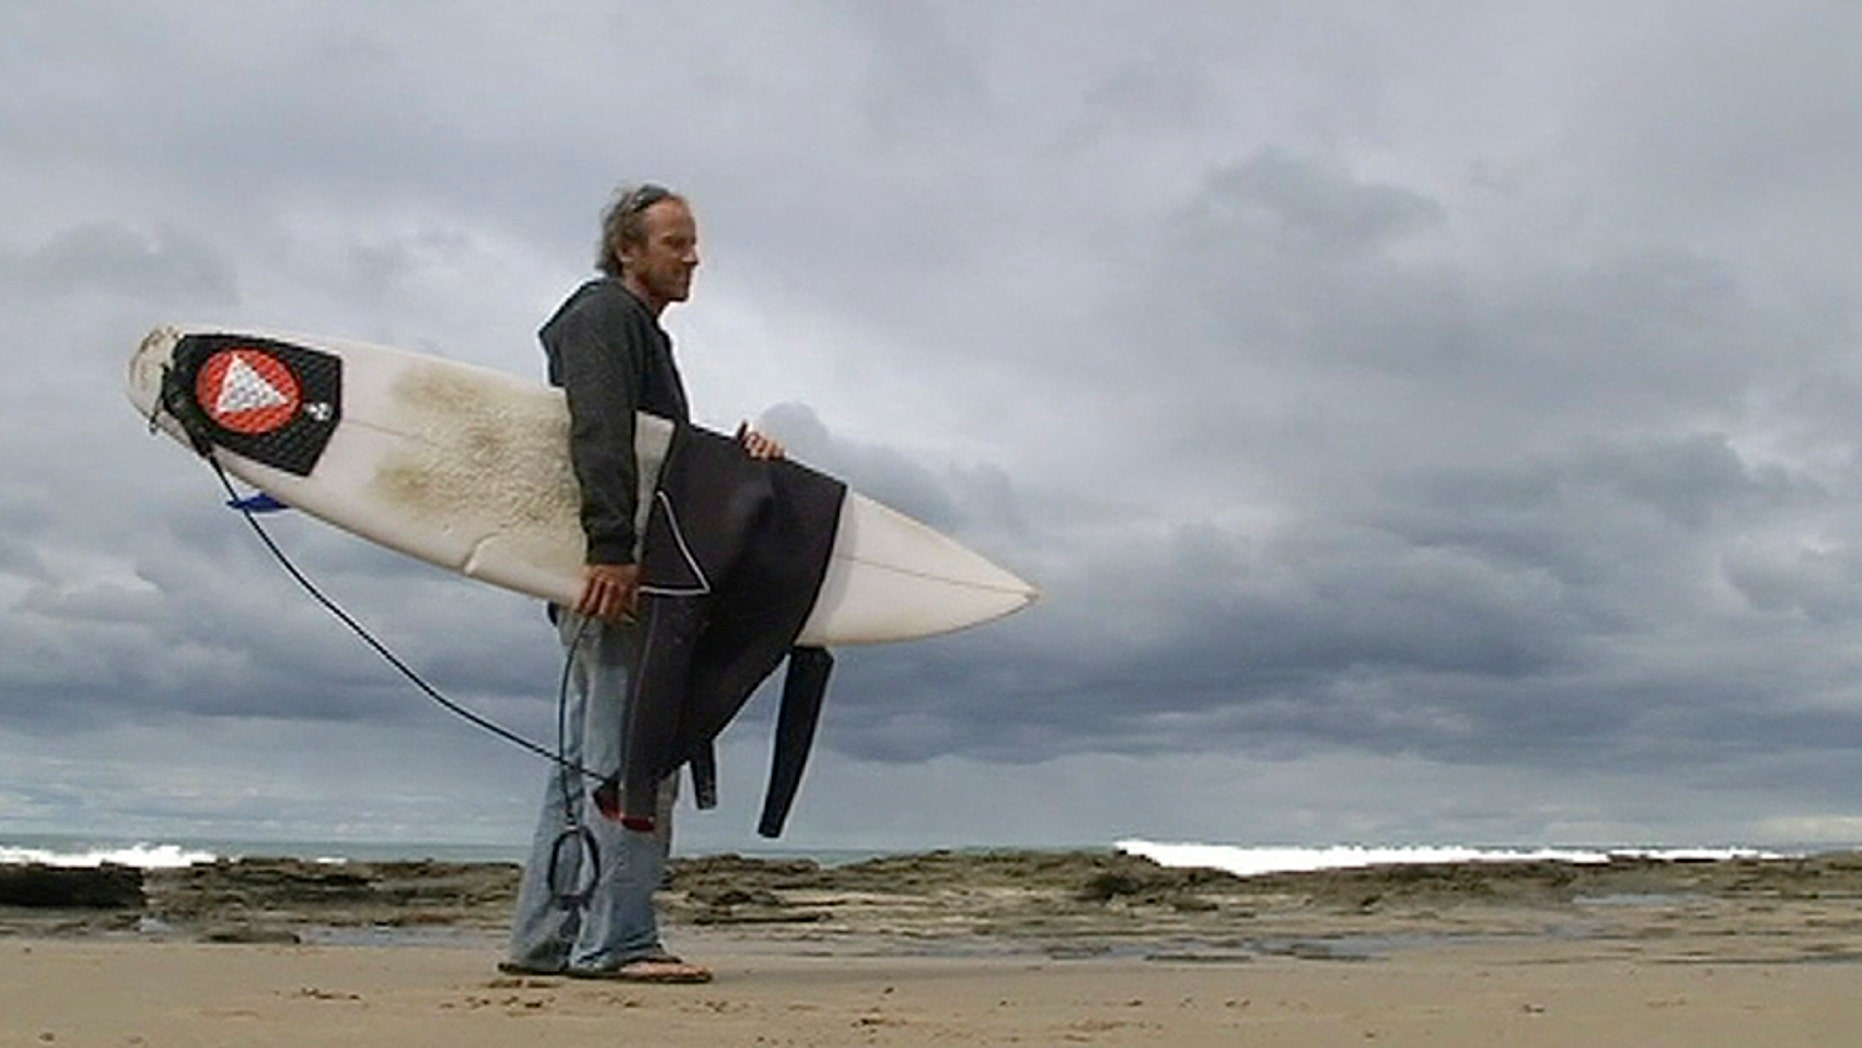 In this photo taken from video, Marcel Brunder, 37, holds his board as he looks out to sea after being attacked while surfing, Tuesday, Aug. 29, 2017, in the waters near Lorne, 140 kms. (90 miles) southwest of Melbourne, Australia. Surviving the attack with a scratch, torn wetsuit and teeth marks on his board, Brundler estimated the shark was a 3-meter (10-foot) great white shark. (Australia Broadcasting Corporation via AP)